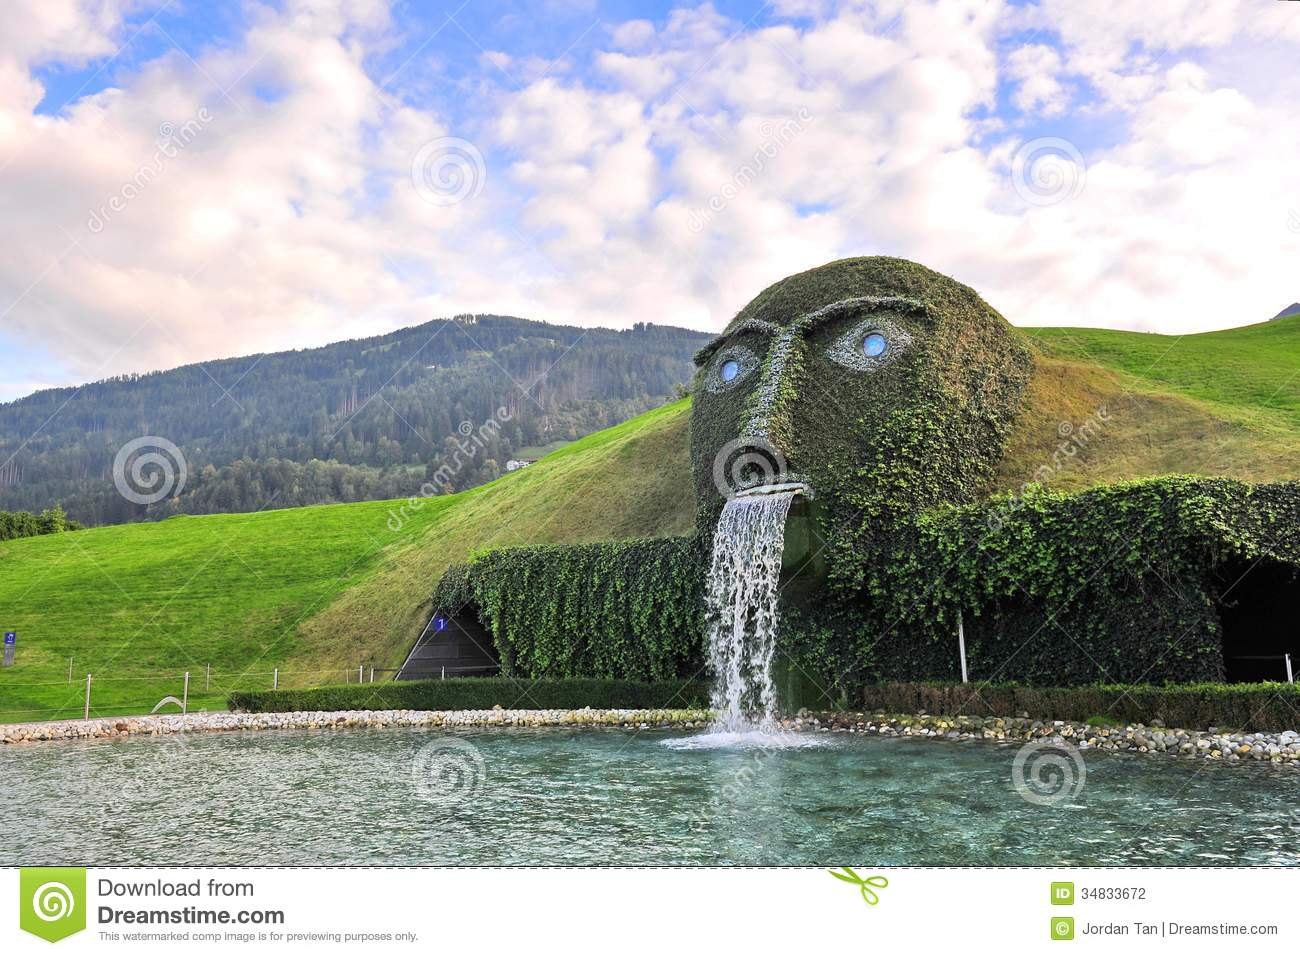 69e5c23c546b95 The Giant Face And Water Feature